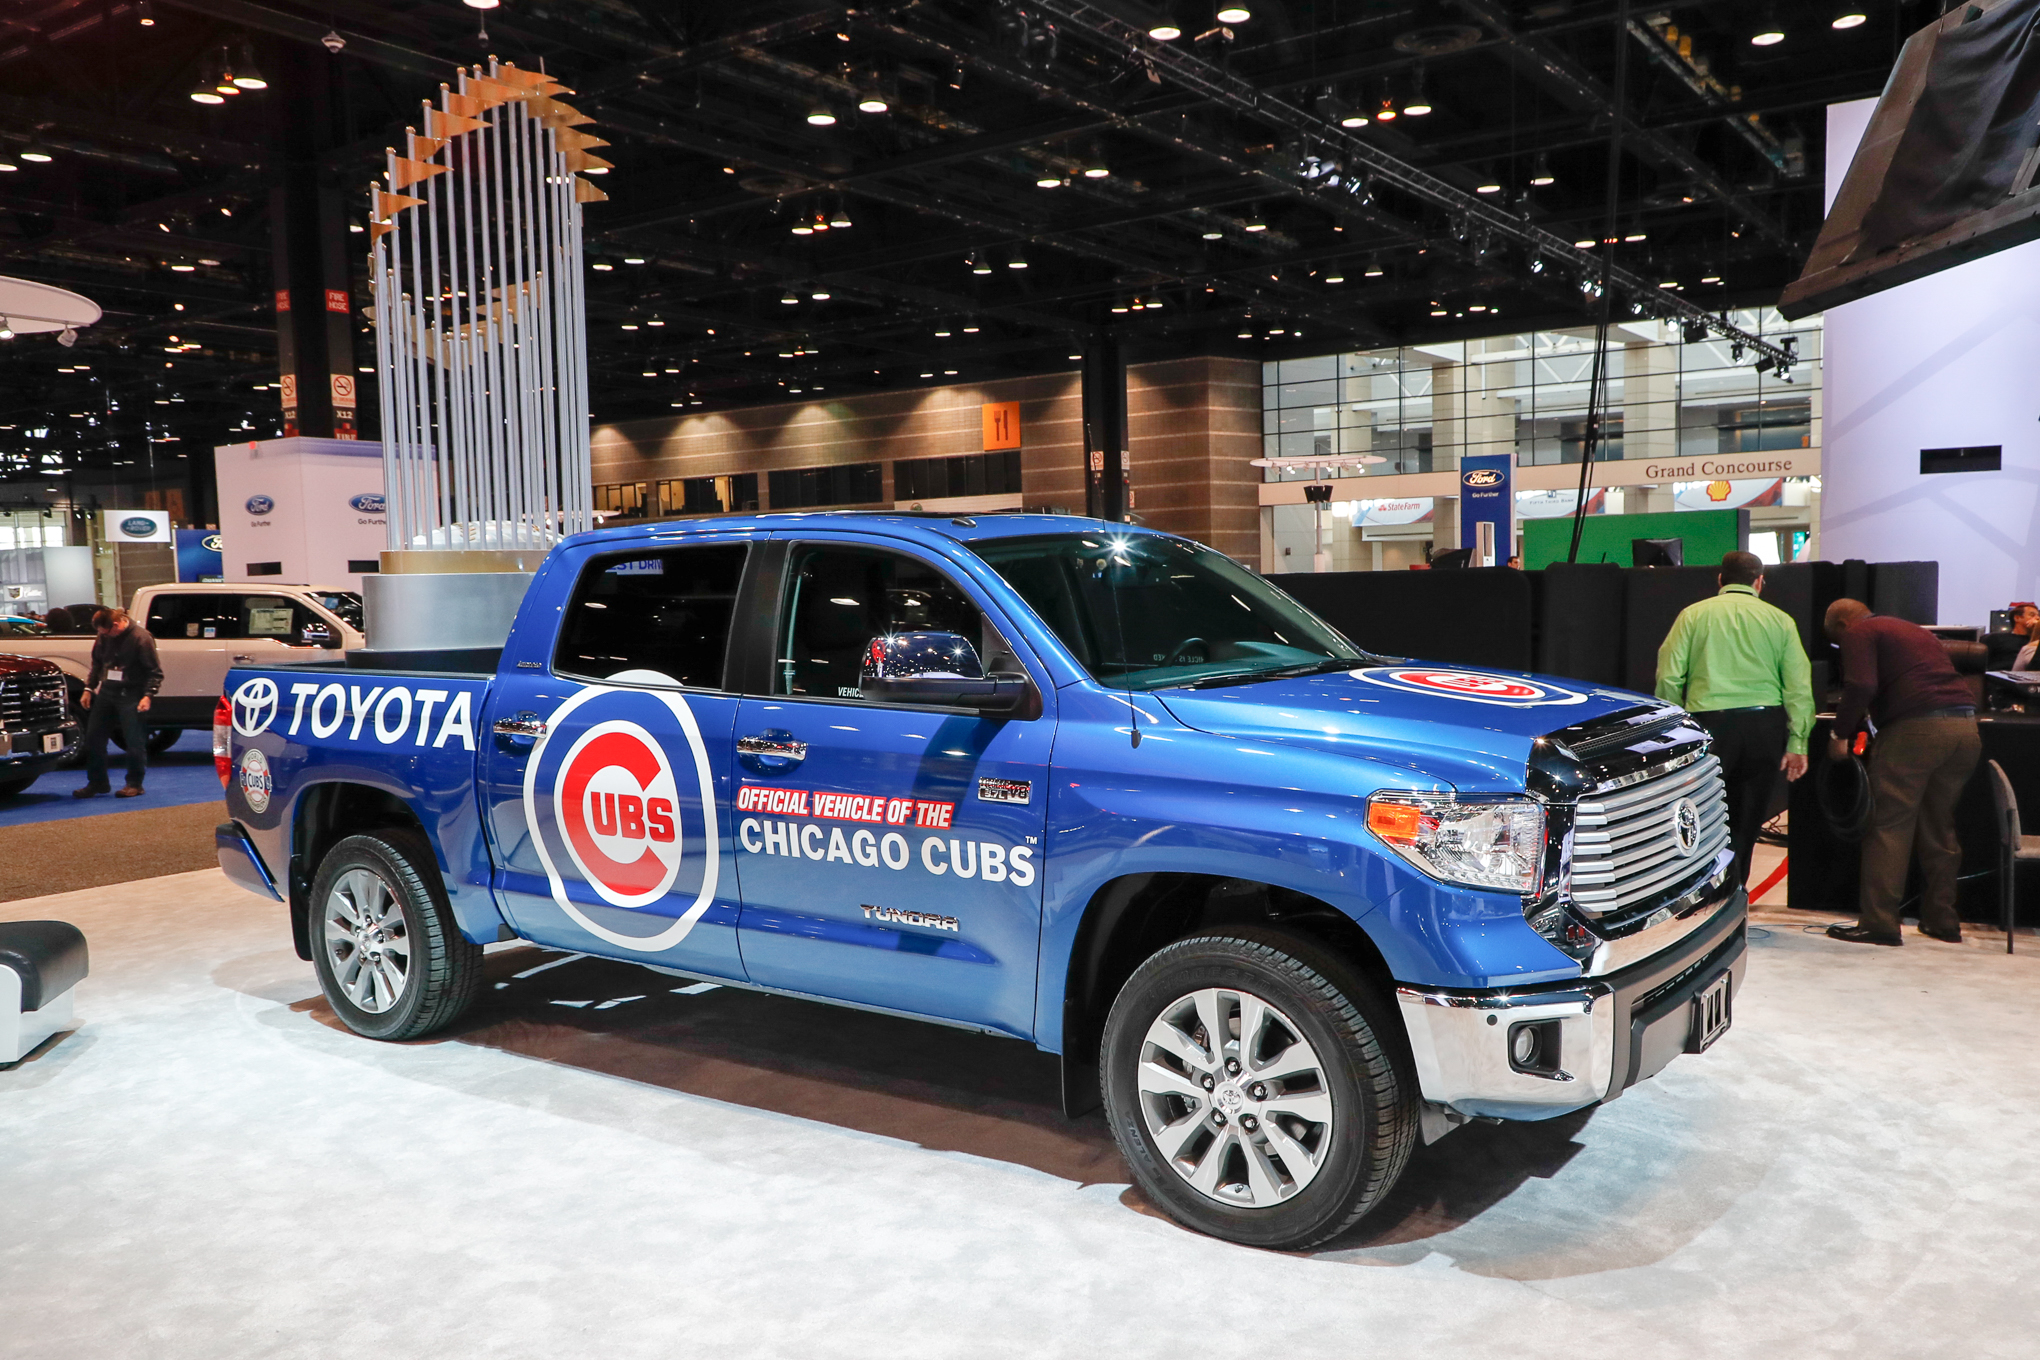 Toyota-Tundra-Chicago-Cubs-truck-front-three-quarter